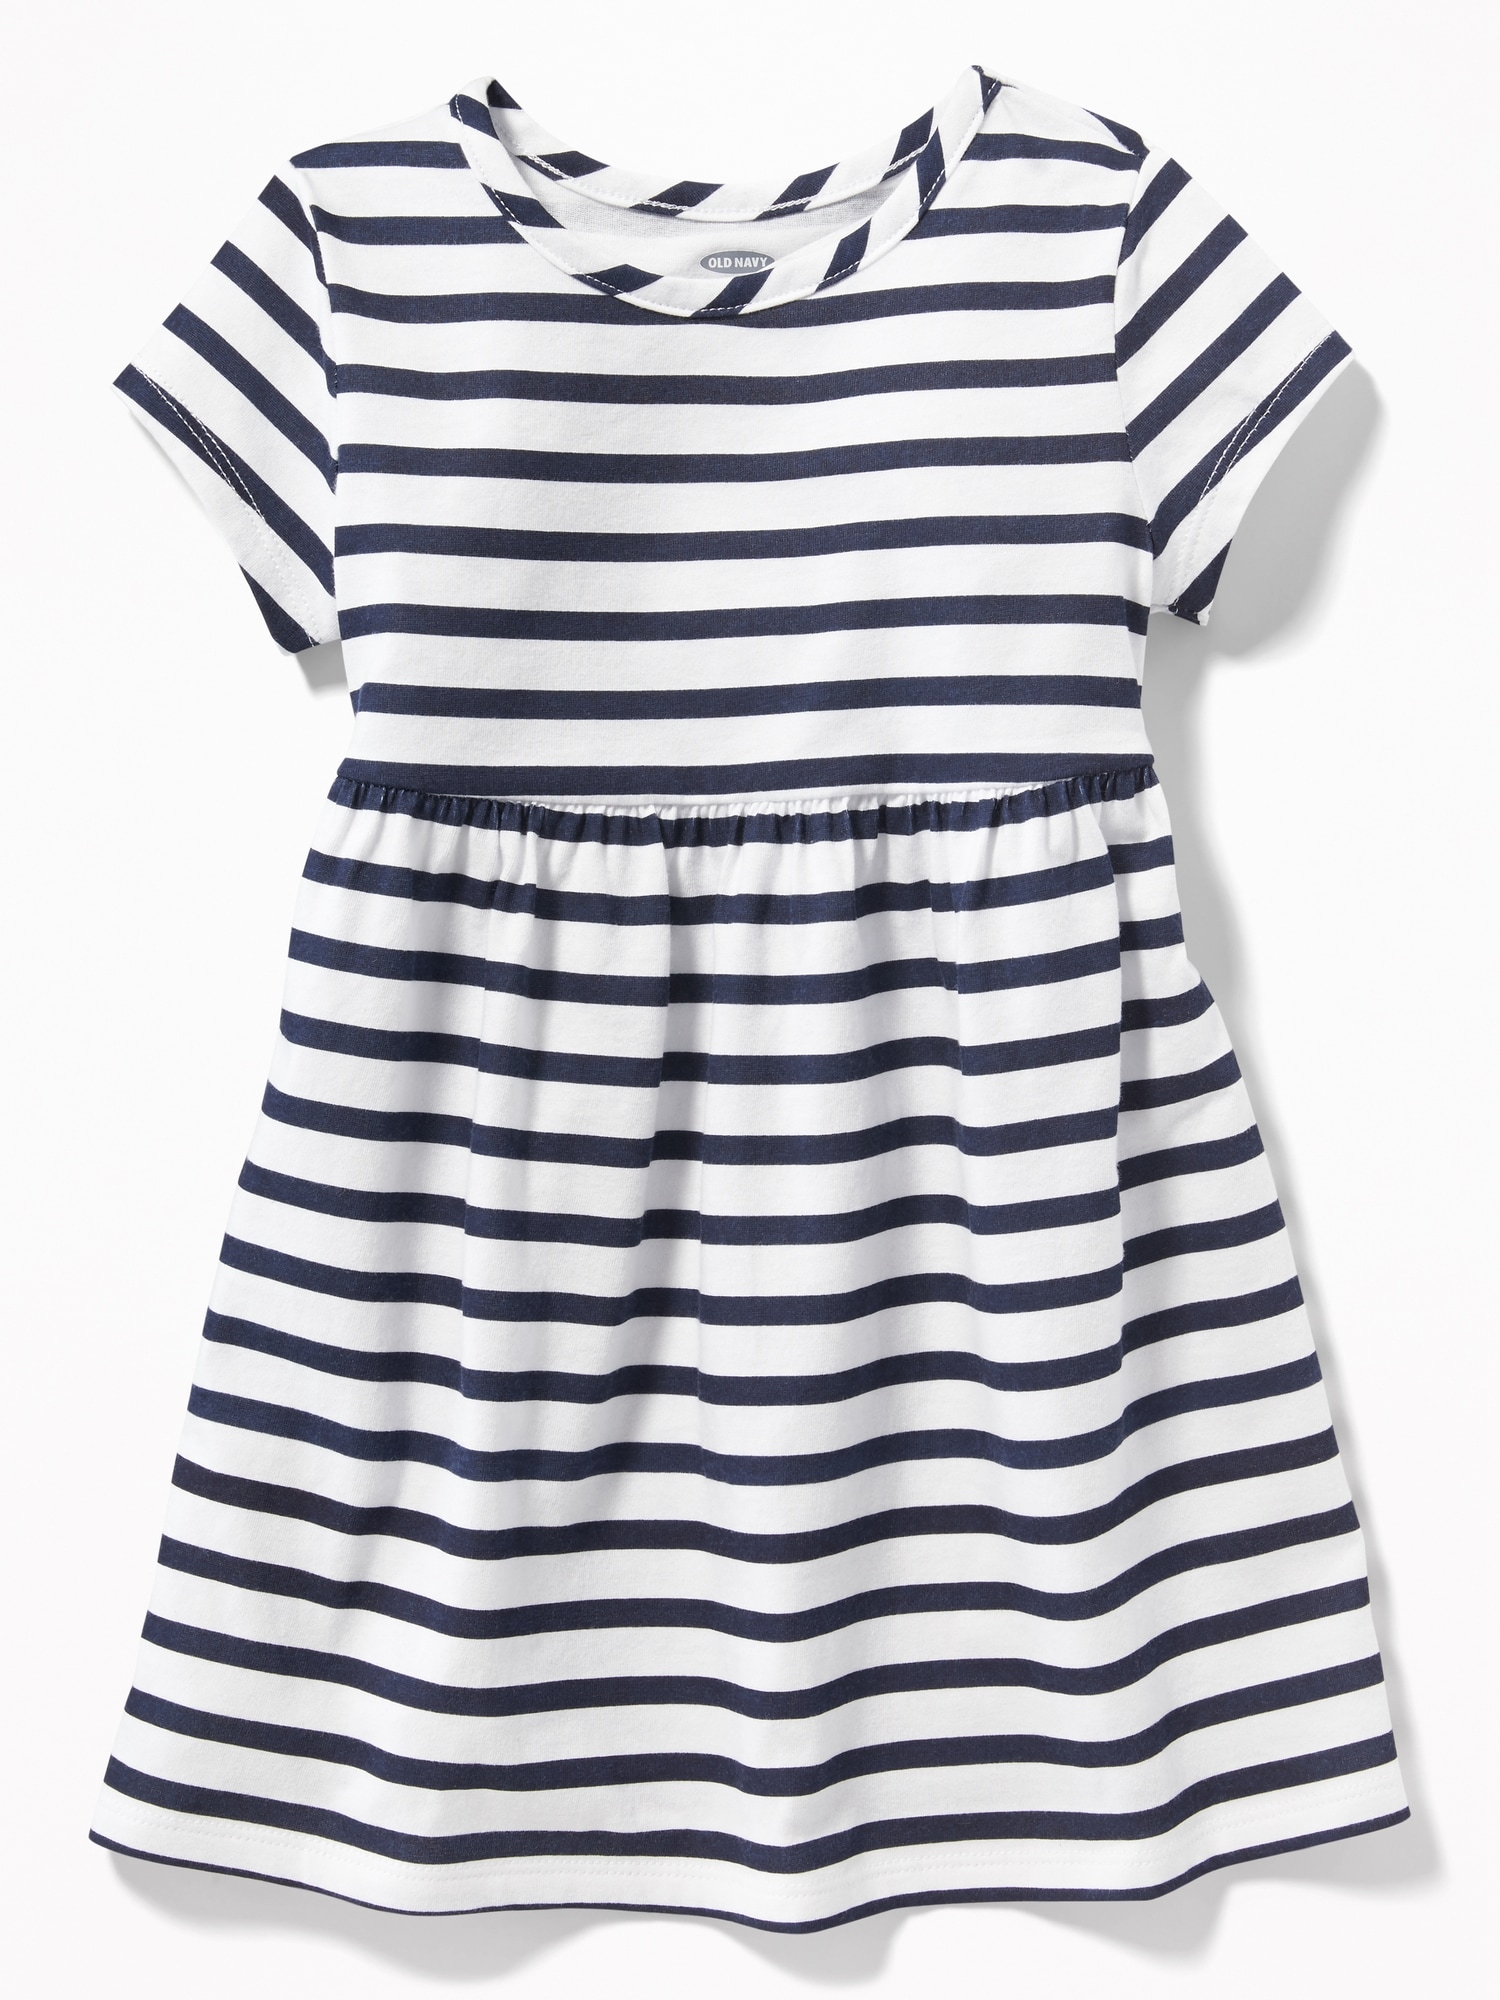 3c8a08b4faa6 Striped Jersey Babydoll Dress for Toddler Girls